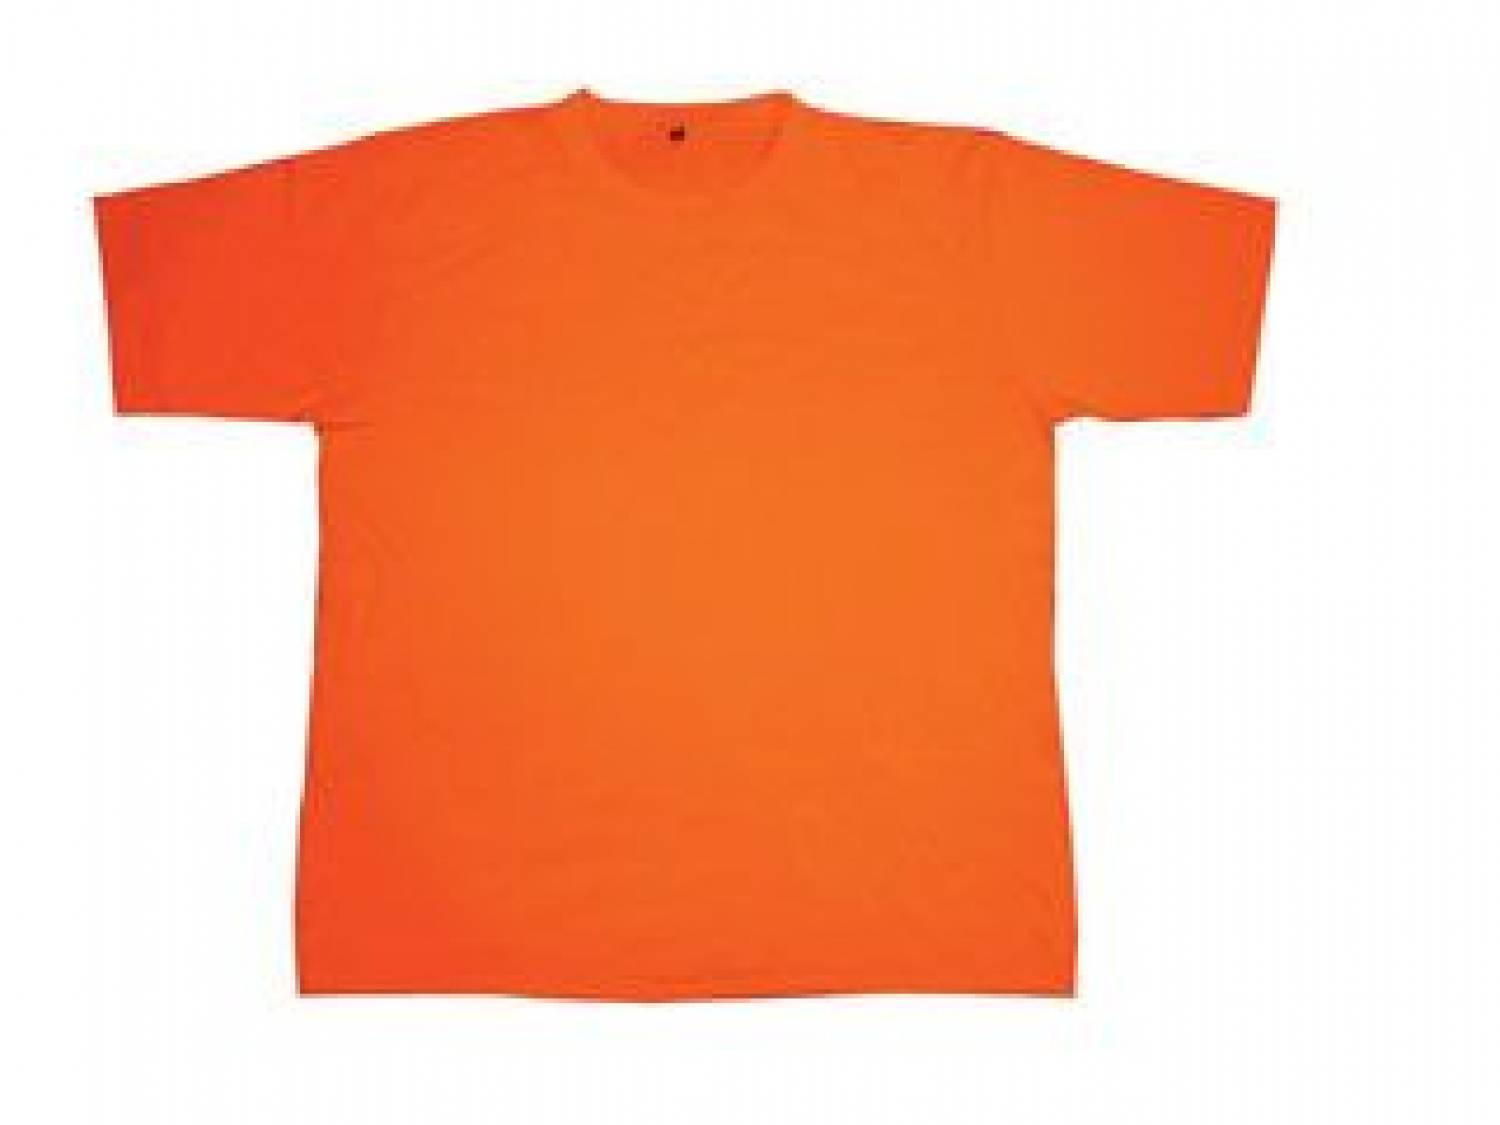 Buy cheap orange cotton baby t shirts goods and gifts for Order t shirts online cheap